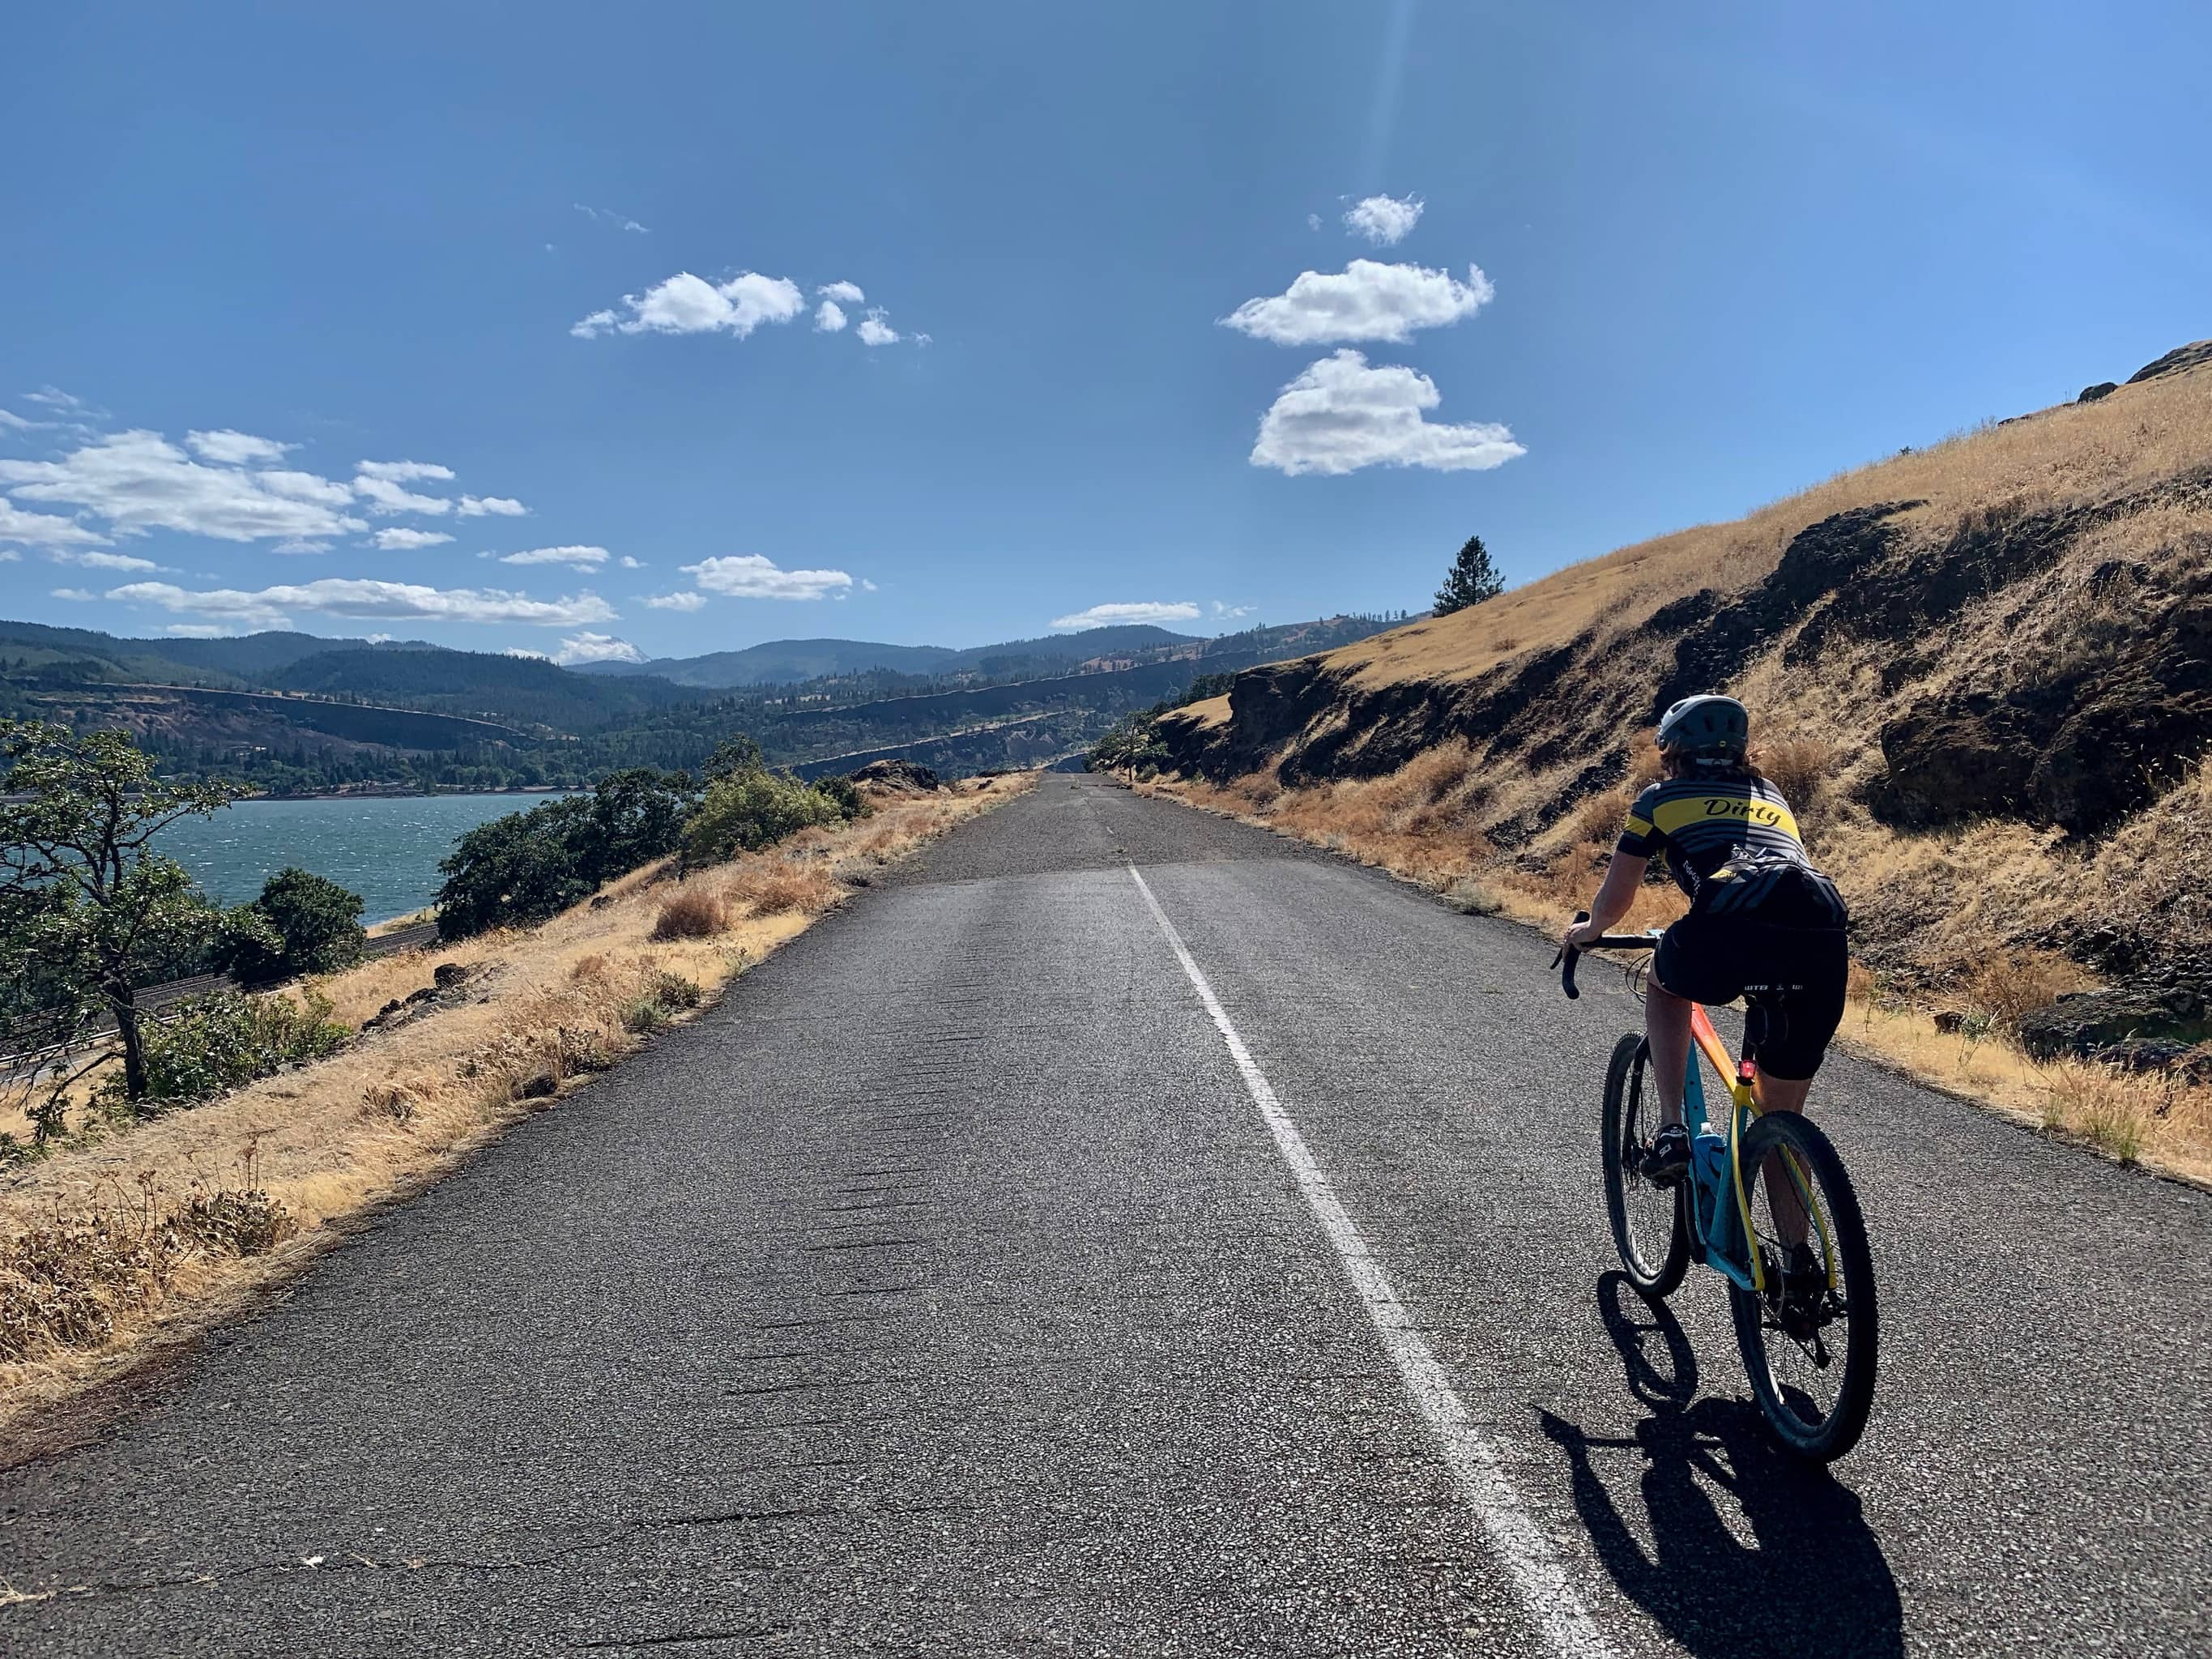 Cyclist on the trail section of Old Highway 8 along the Columbia River.